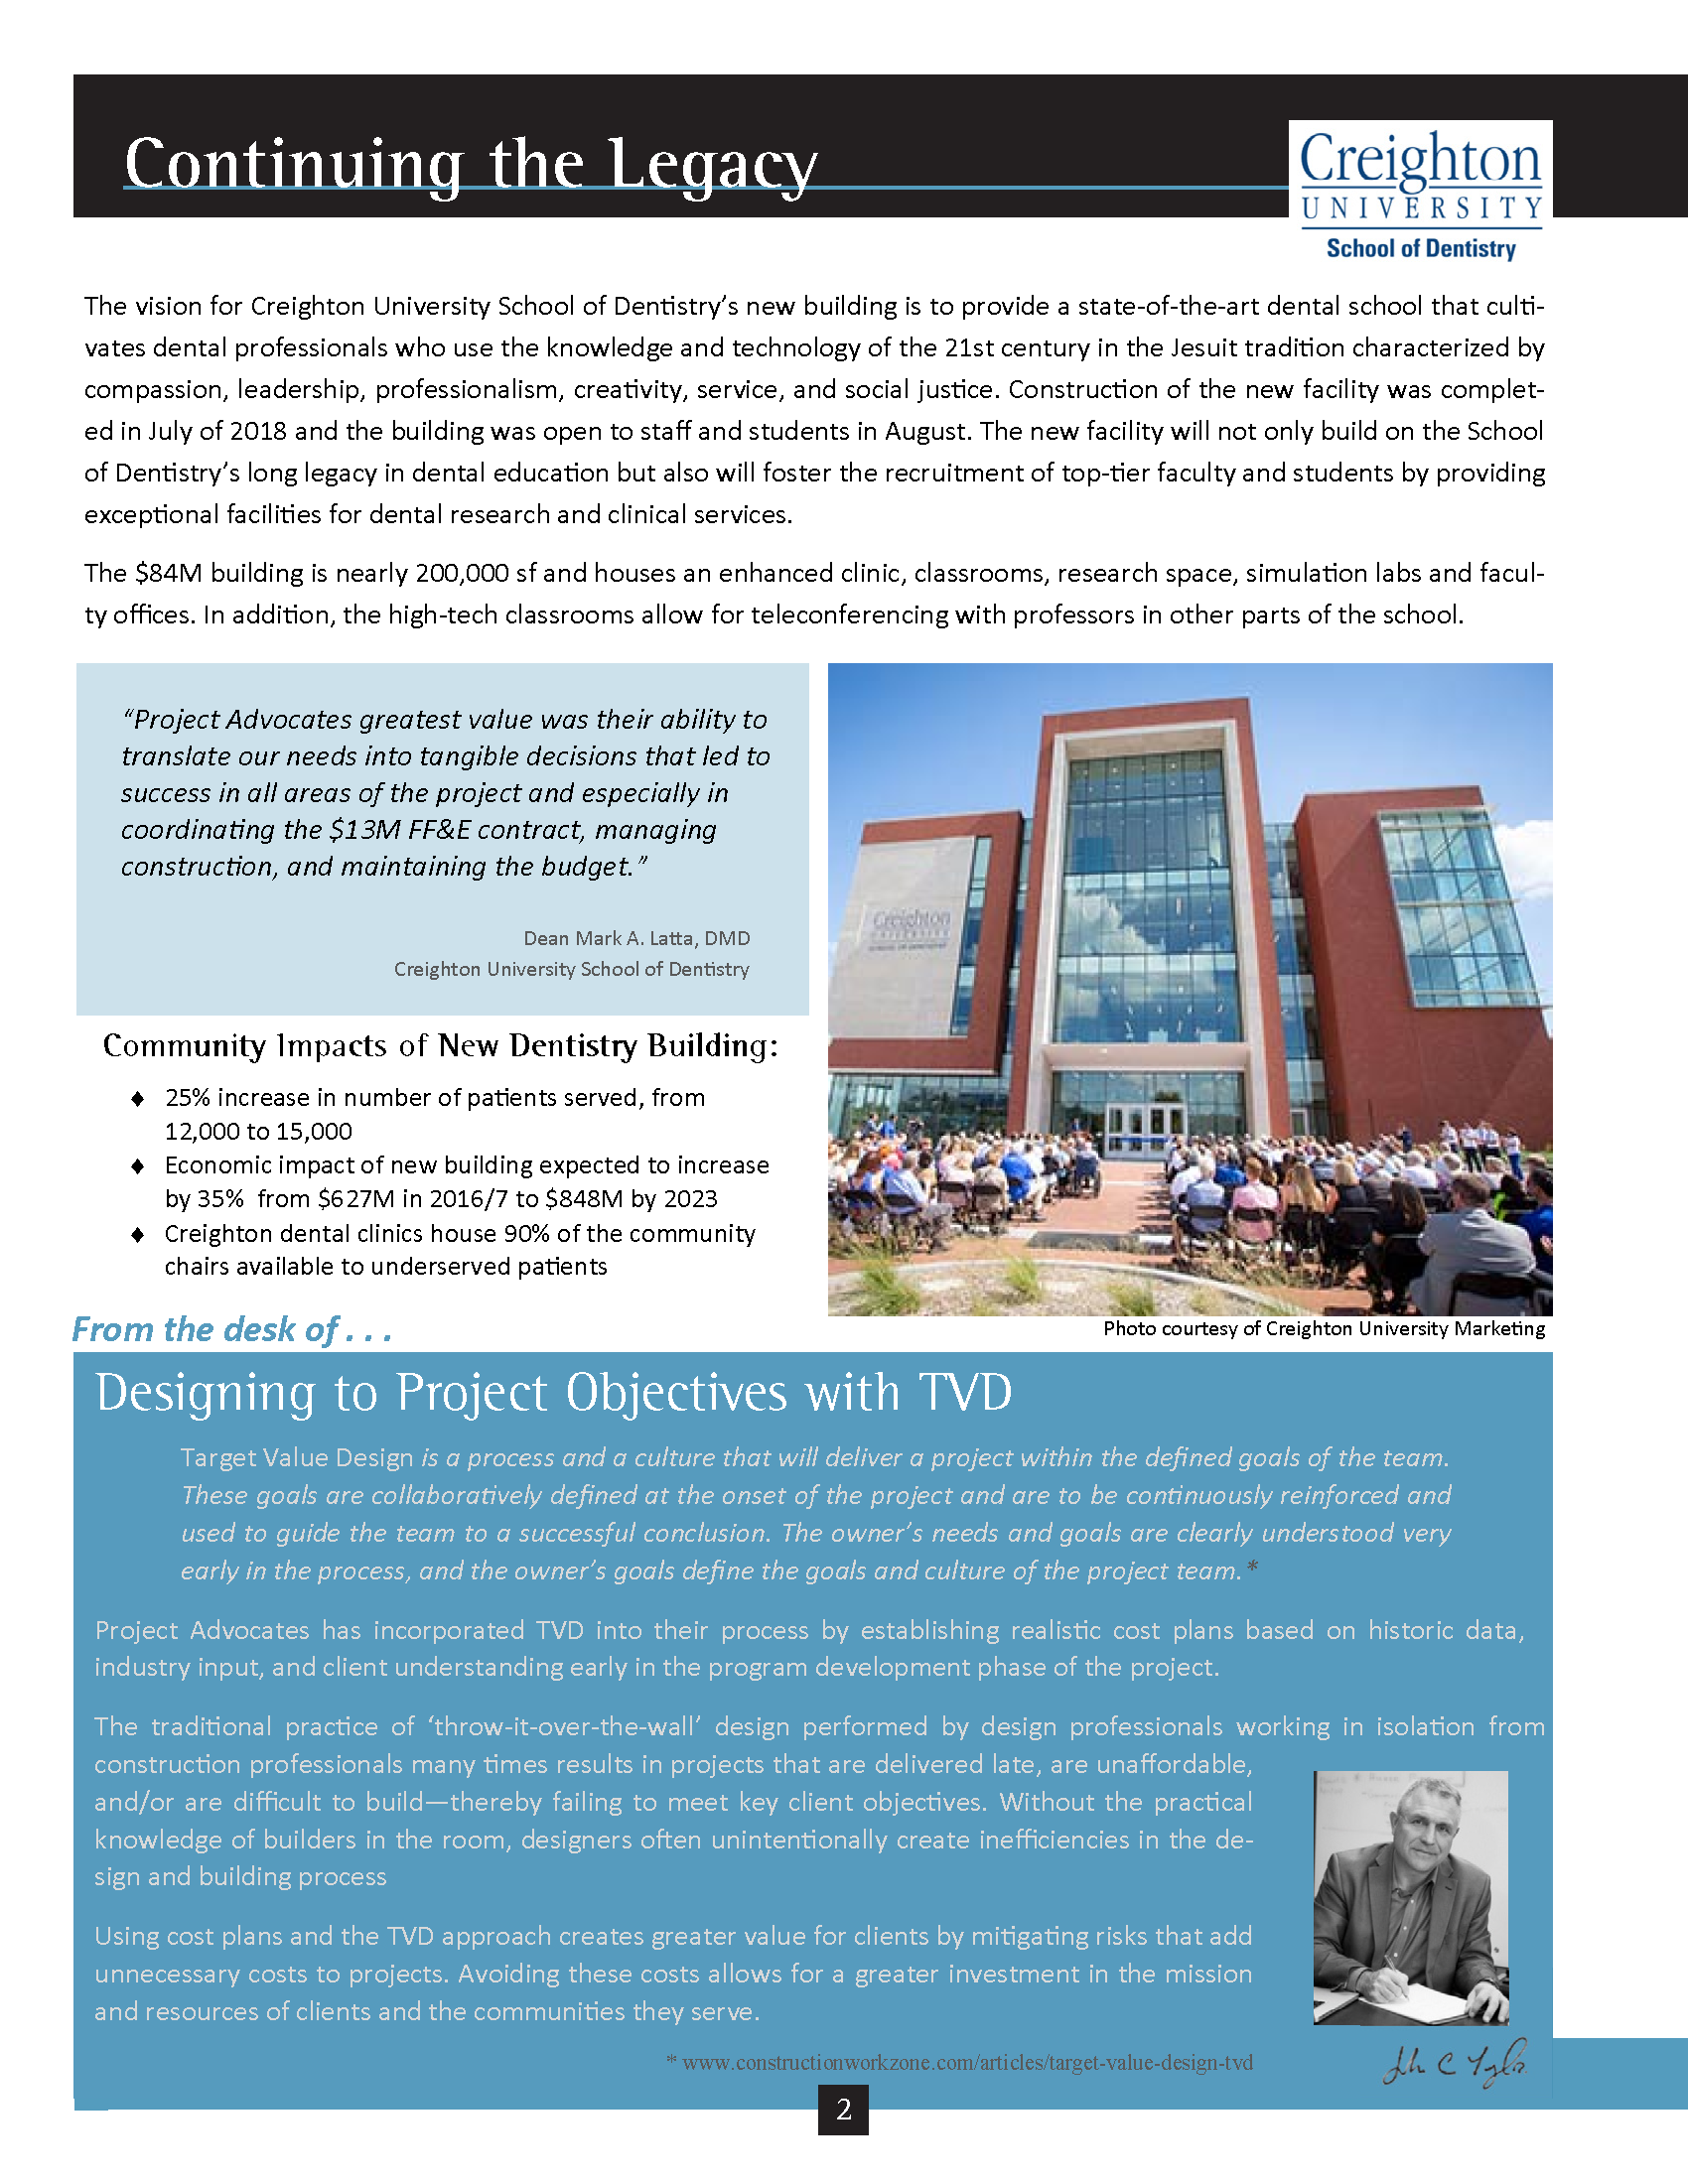 PA HOLIDAY NEWSLETTER-12.18_Page_2.png